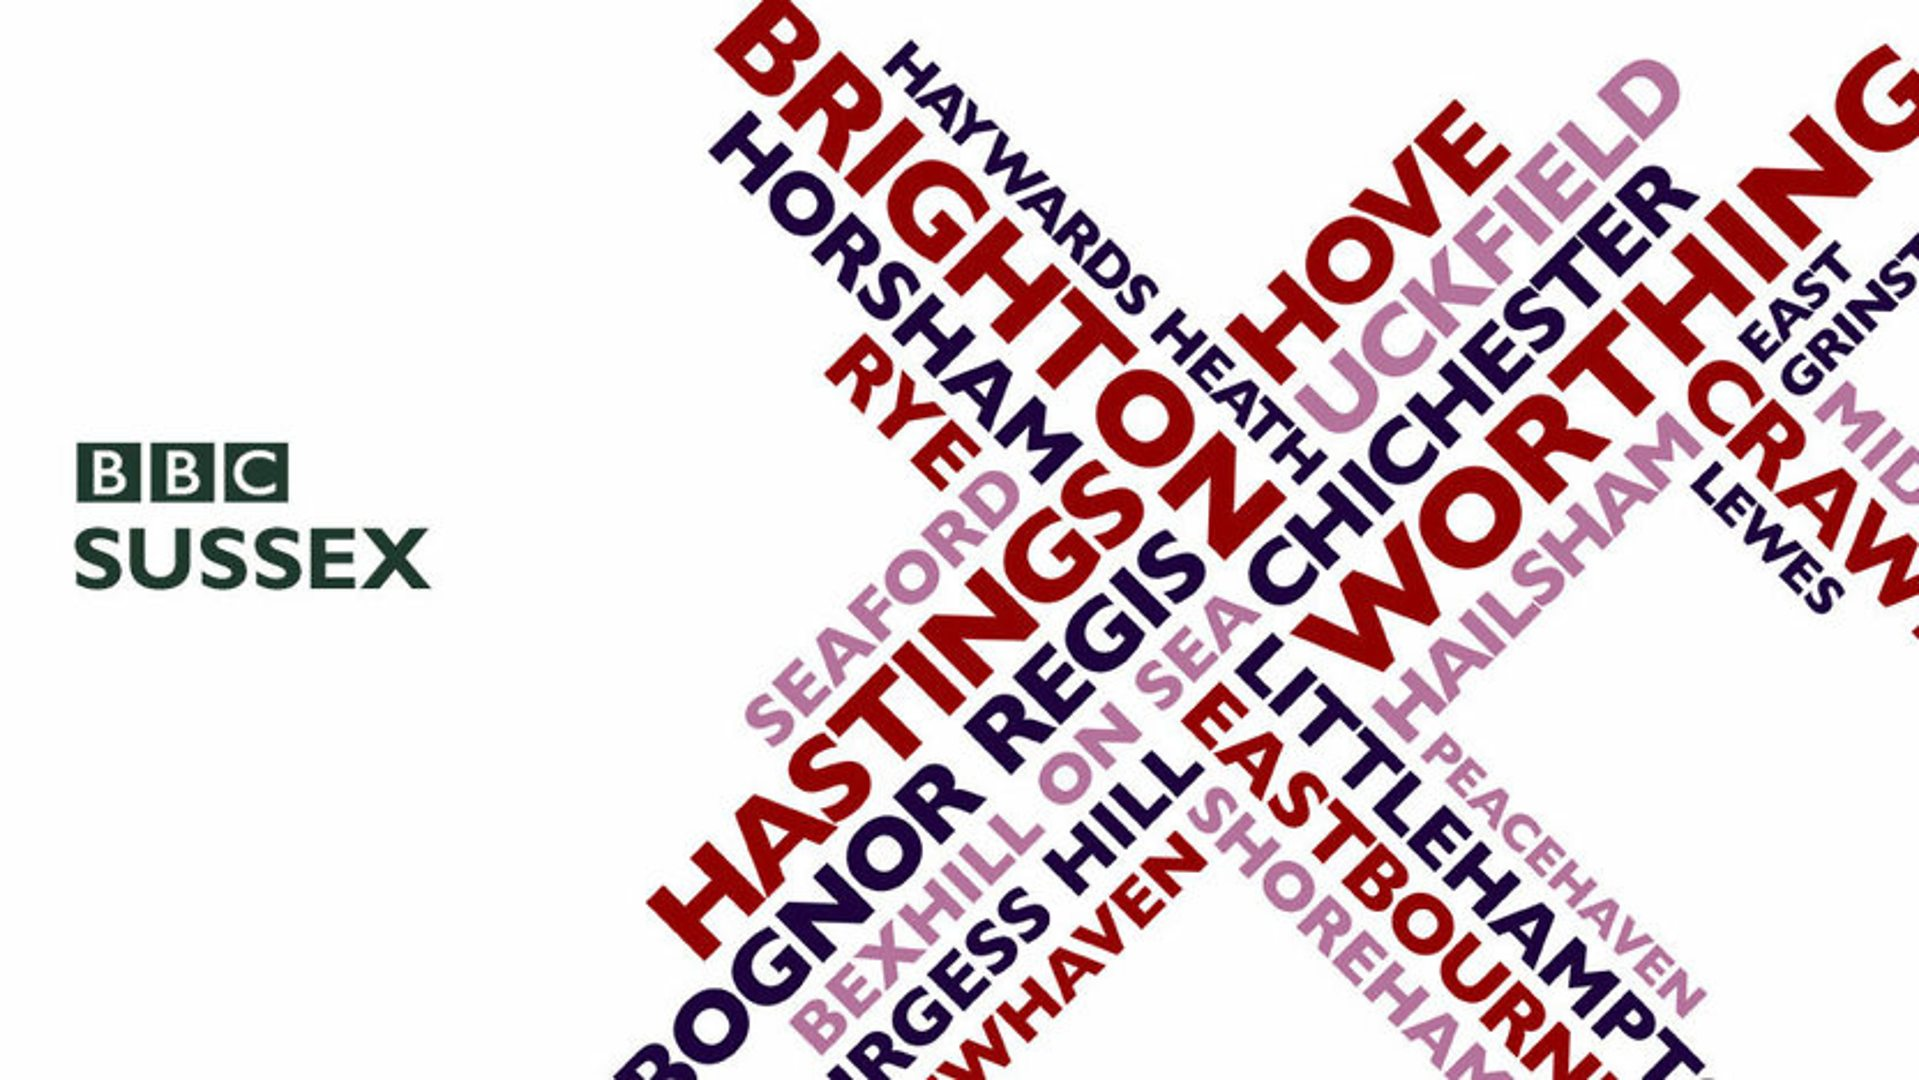 BBC Sussex Invite – Listen to us with Sarah Gorrell on Wednesday 1st May